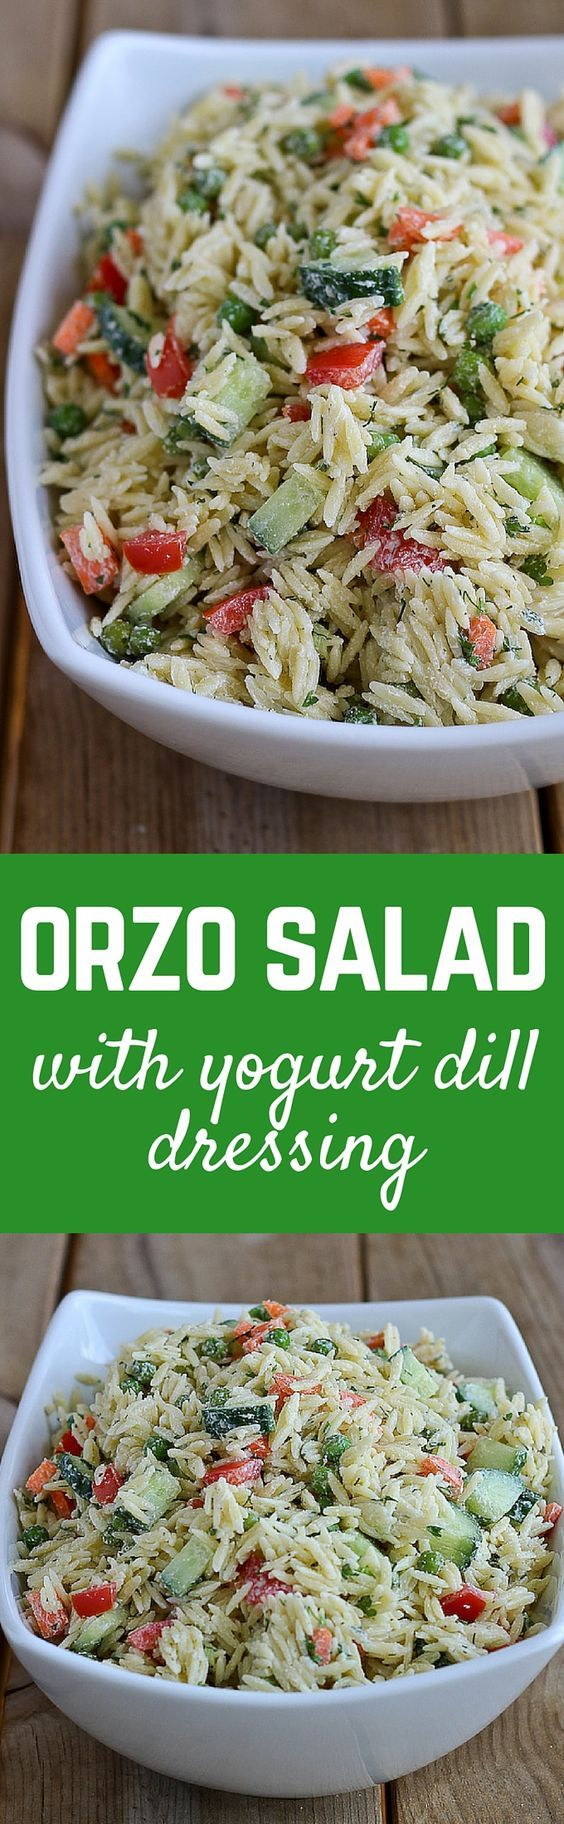 Orzo Salad Recipe with Yogurt Dill Dressing on RachelCooks.com